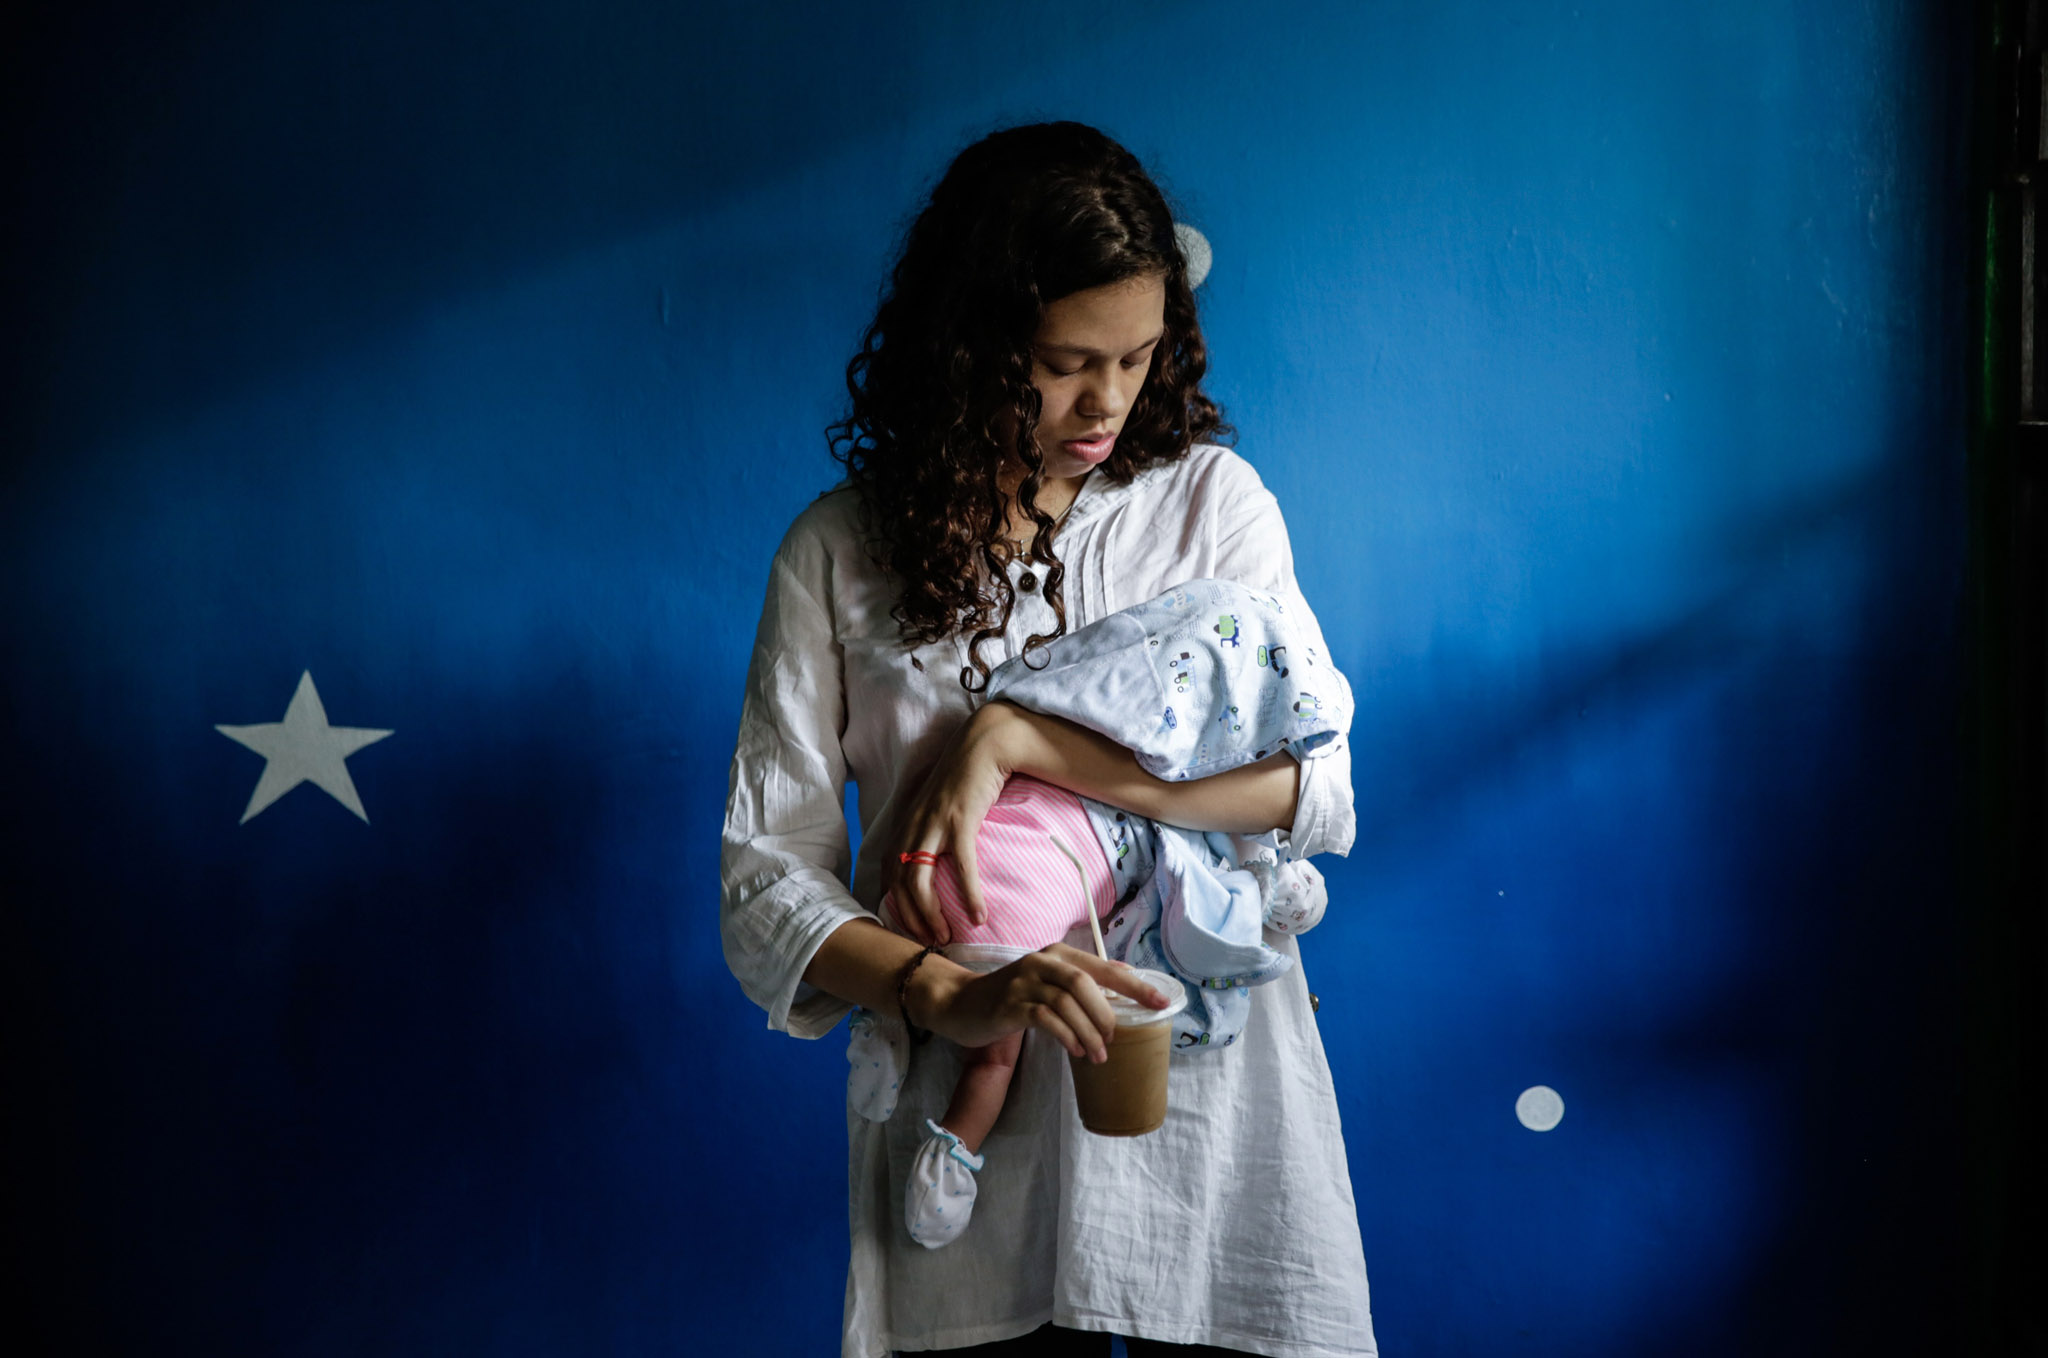 Heather Mack and Tommy Schaefer Arrive For Bali Murder Trial...DENPASAR, BALI, INDONESIA - MARCH 31: Heather Mack,19, of the US holds her baby in a cell before her sentence demand trial on March 31, 2015 in Denpasar, Bali, Indonesia. Indonesian prosecutors asked a court to sentence Heather Mack to 15 years and Tommy Schaefer to 18 years in jail. Tommy Schaefer and his girlfriend Heather Mack are accused of murdering Mack's mother, Sheila von Wiese-Mack, whose body was found stuffed inside a suitcase in the back of a taxi outside a luxury Bali hotel in August 2014. (Photo by Agung Parameswara/Getty Images)